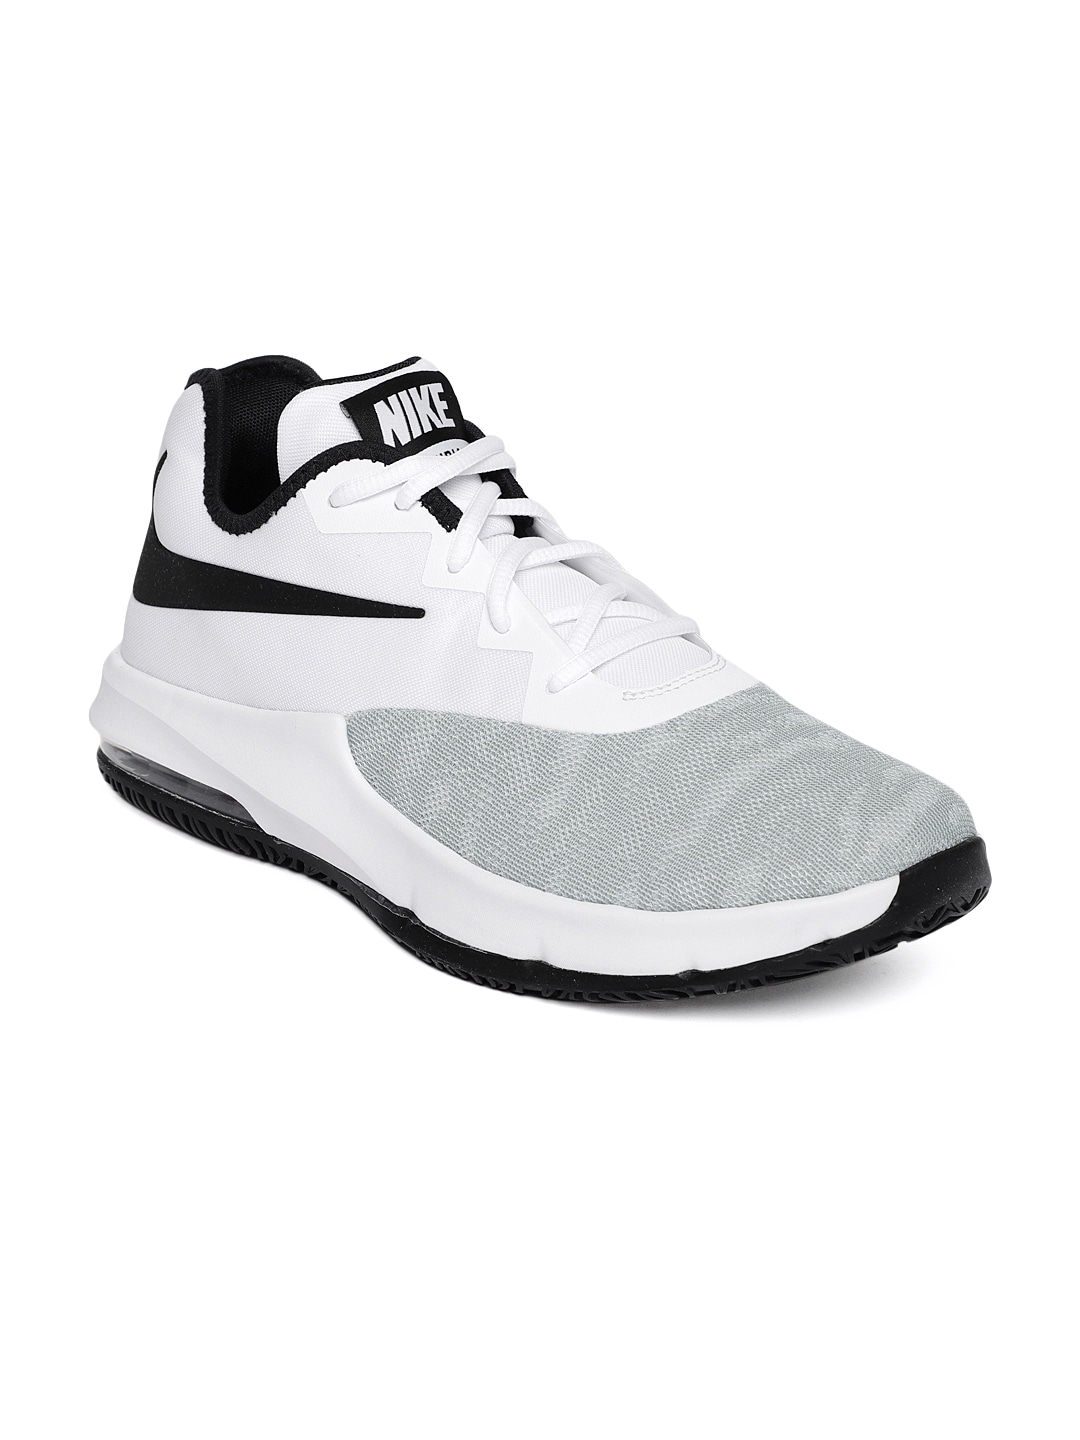 san francisco a449b 9cc7e Nike Basketball Shoes   Buy Nike Basketball Shoes Online in India at Best  Price